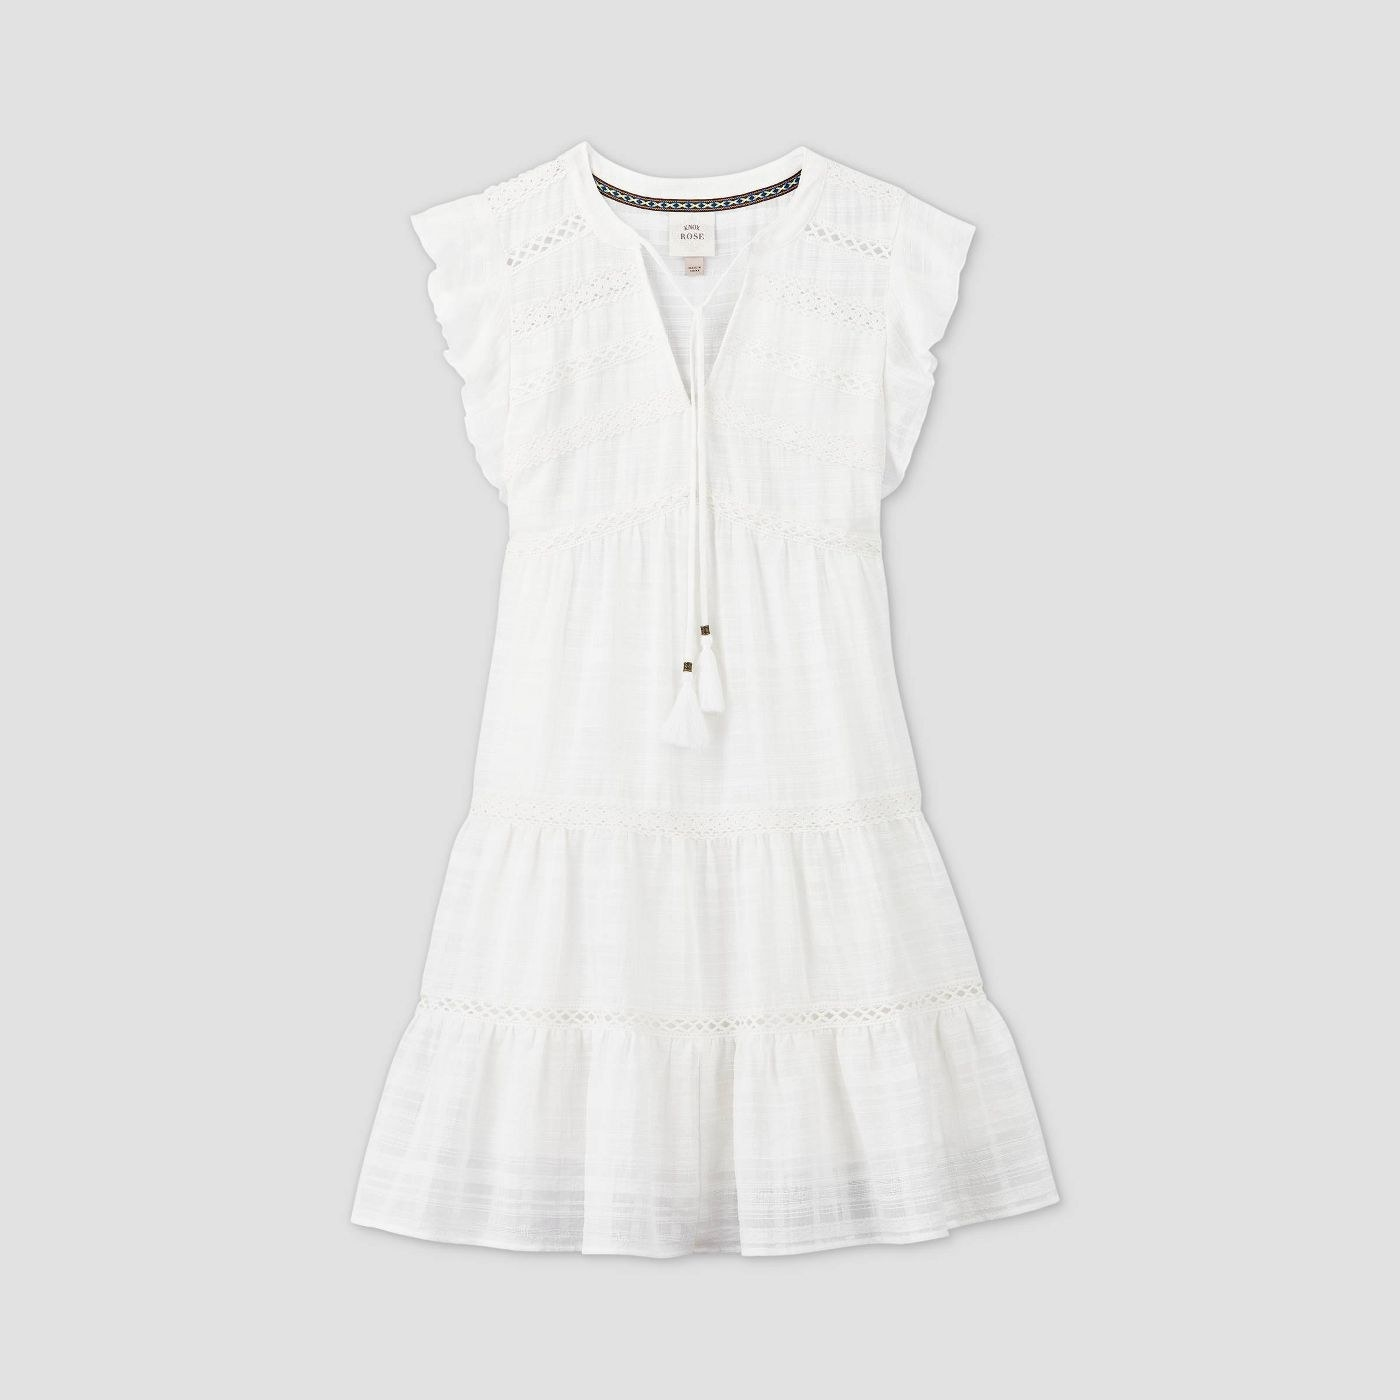 A white tiered eyelet dress with tassel ties at the collar